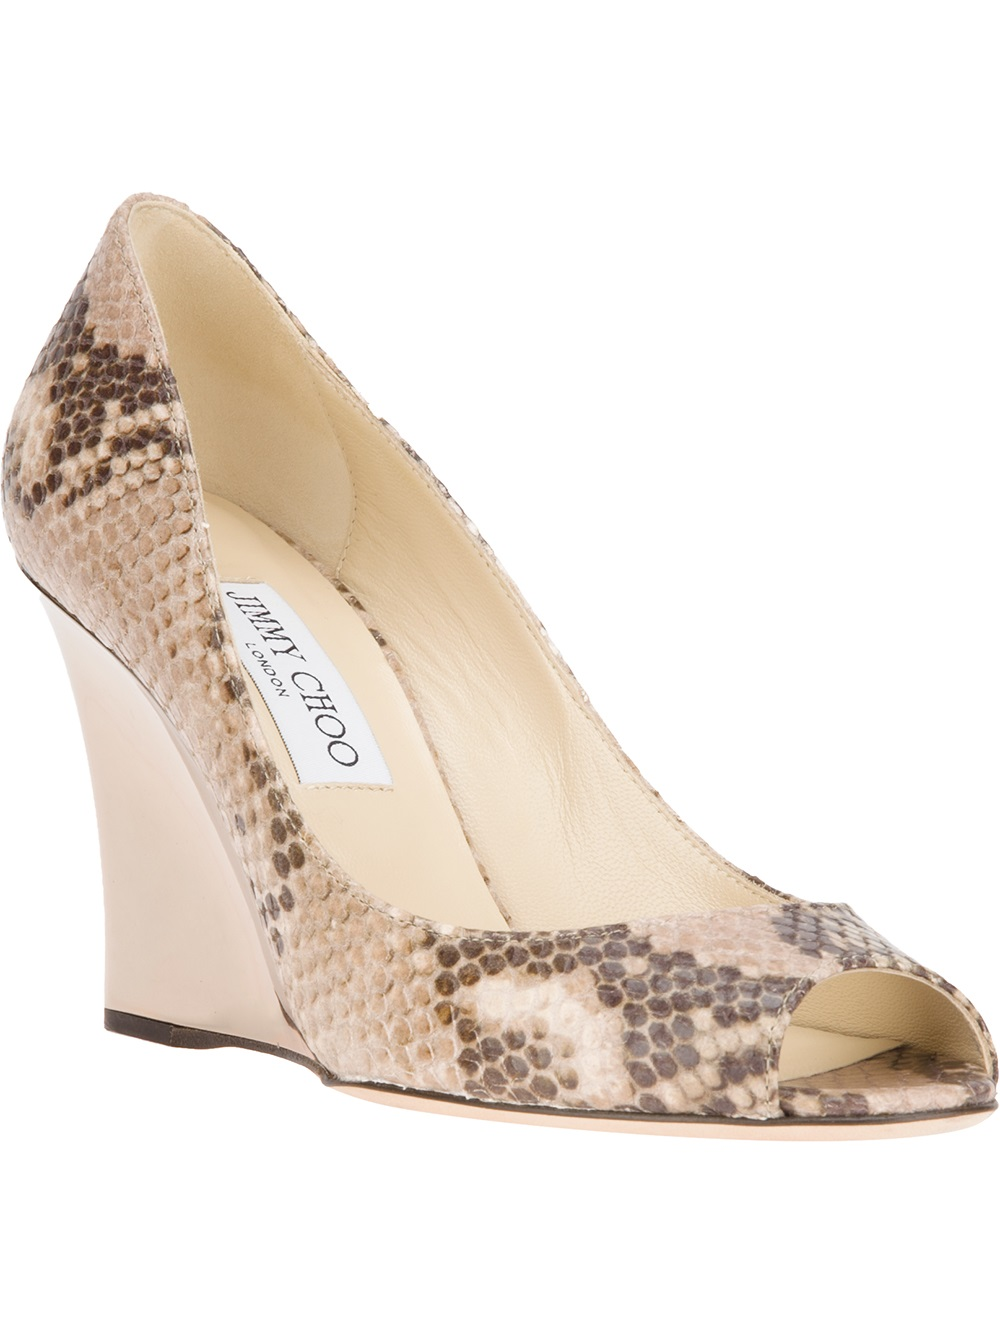 afb585ebfe0 Lyst - Jimmy Choo Baxen Wedge Pump in Natural